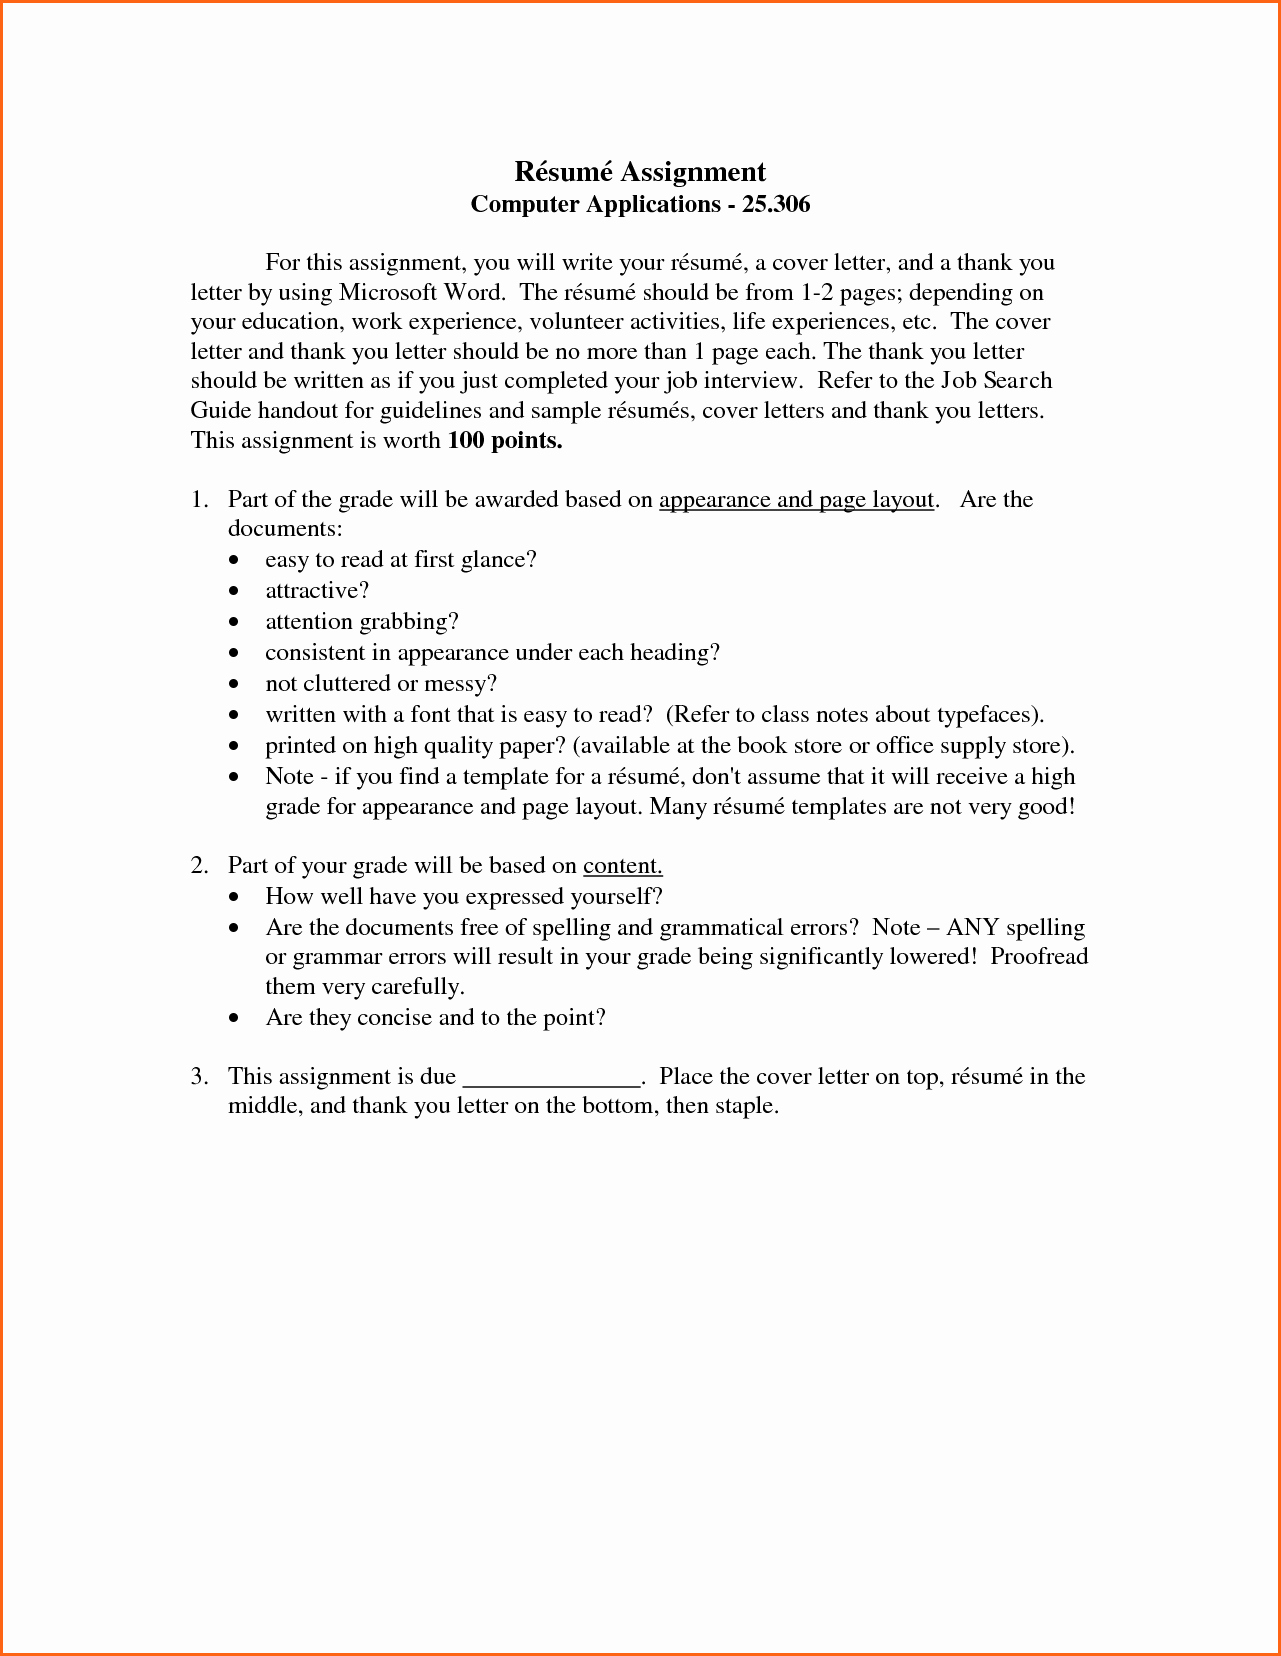 Resumes On Microsoft Word 2007 Best Of 6 Free Resume Templates Microsoft Word 2007 Bud